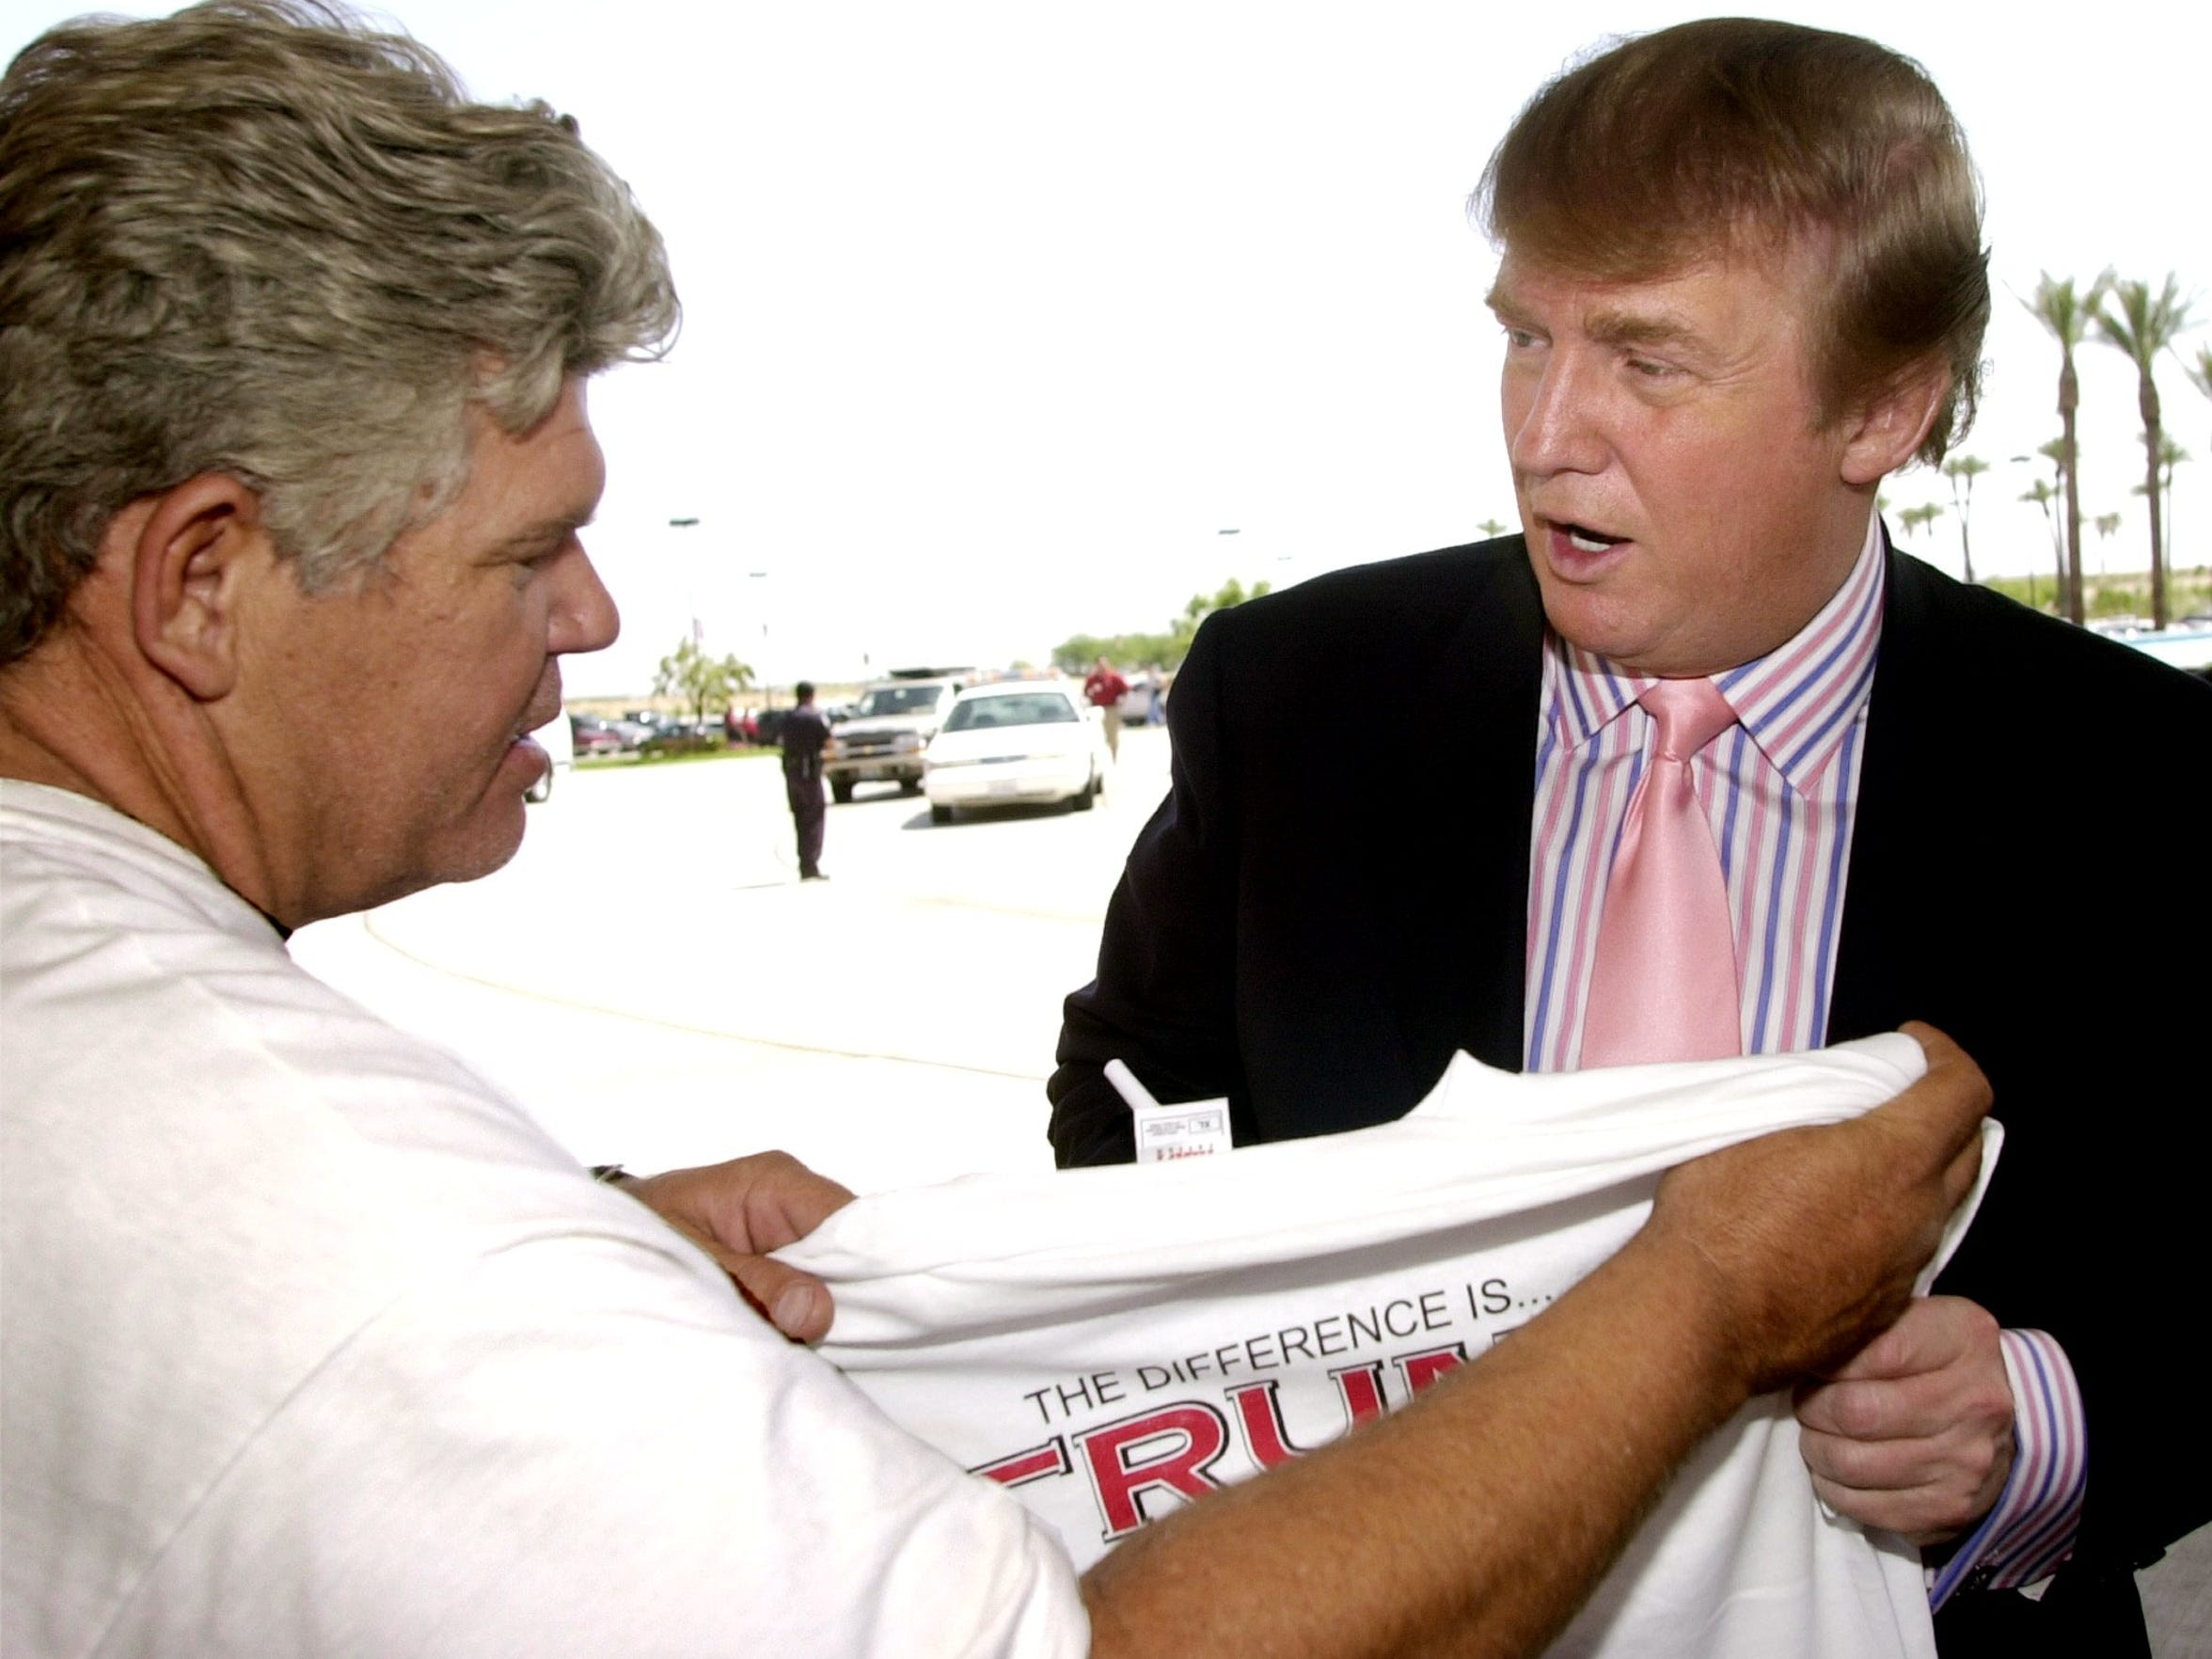 Donald Trump puts his autograph on a t-shirt after stepping out of his limo at Trump 29 in 2004.